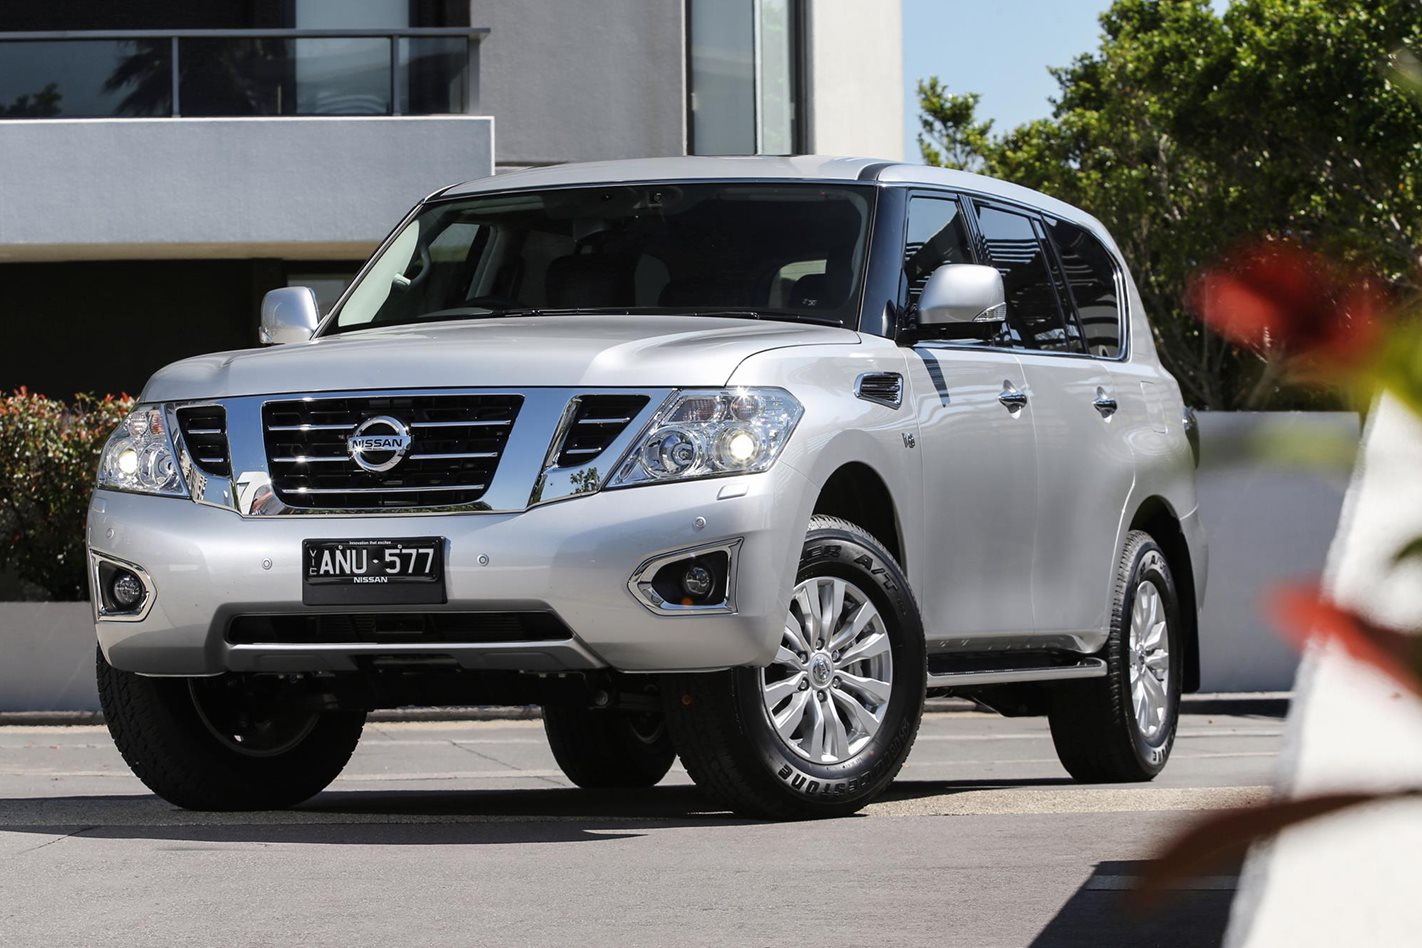 Nissan Patrol 2018 Review, Price & Features